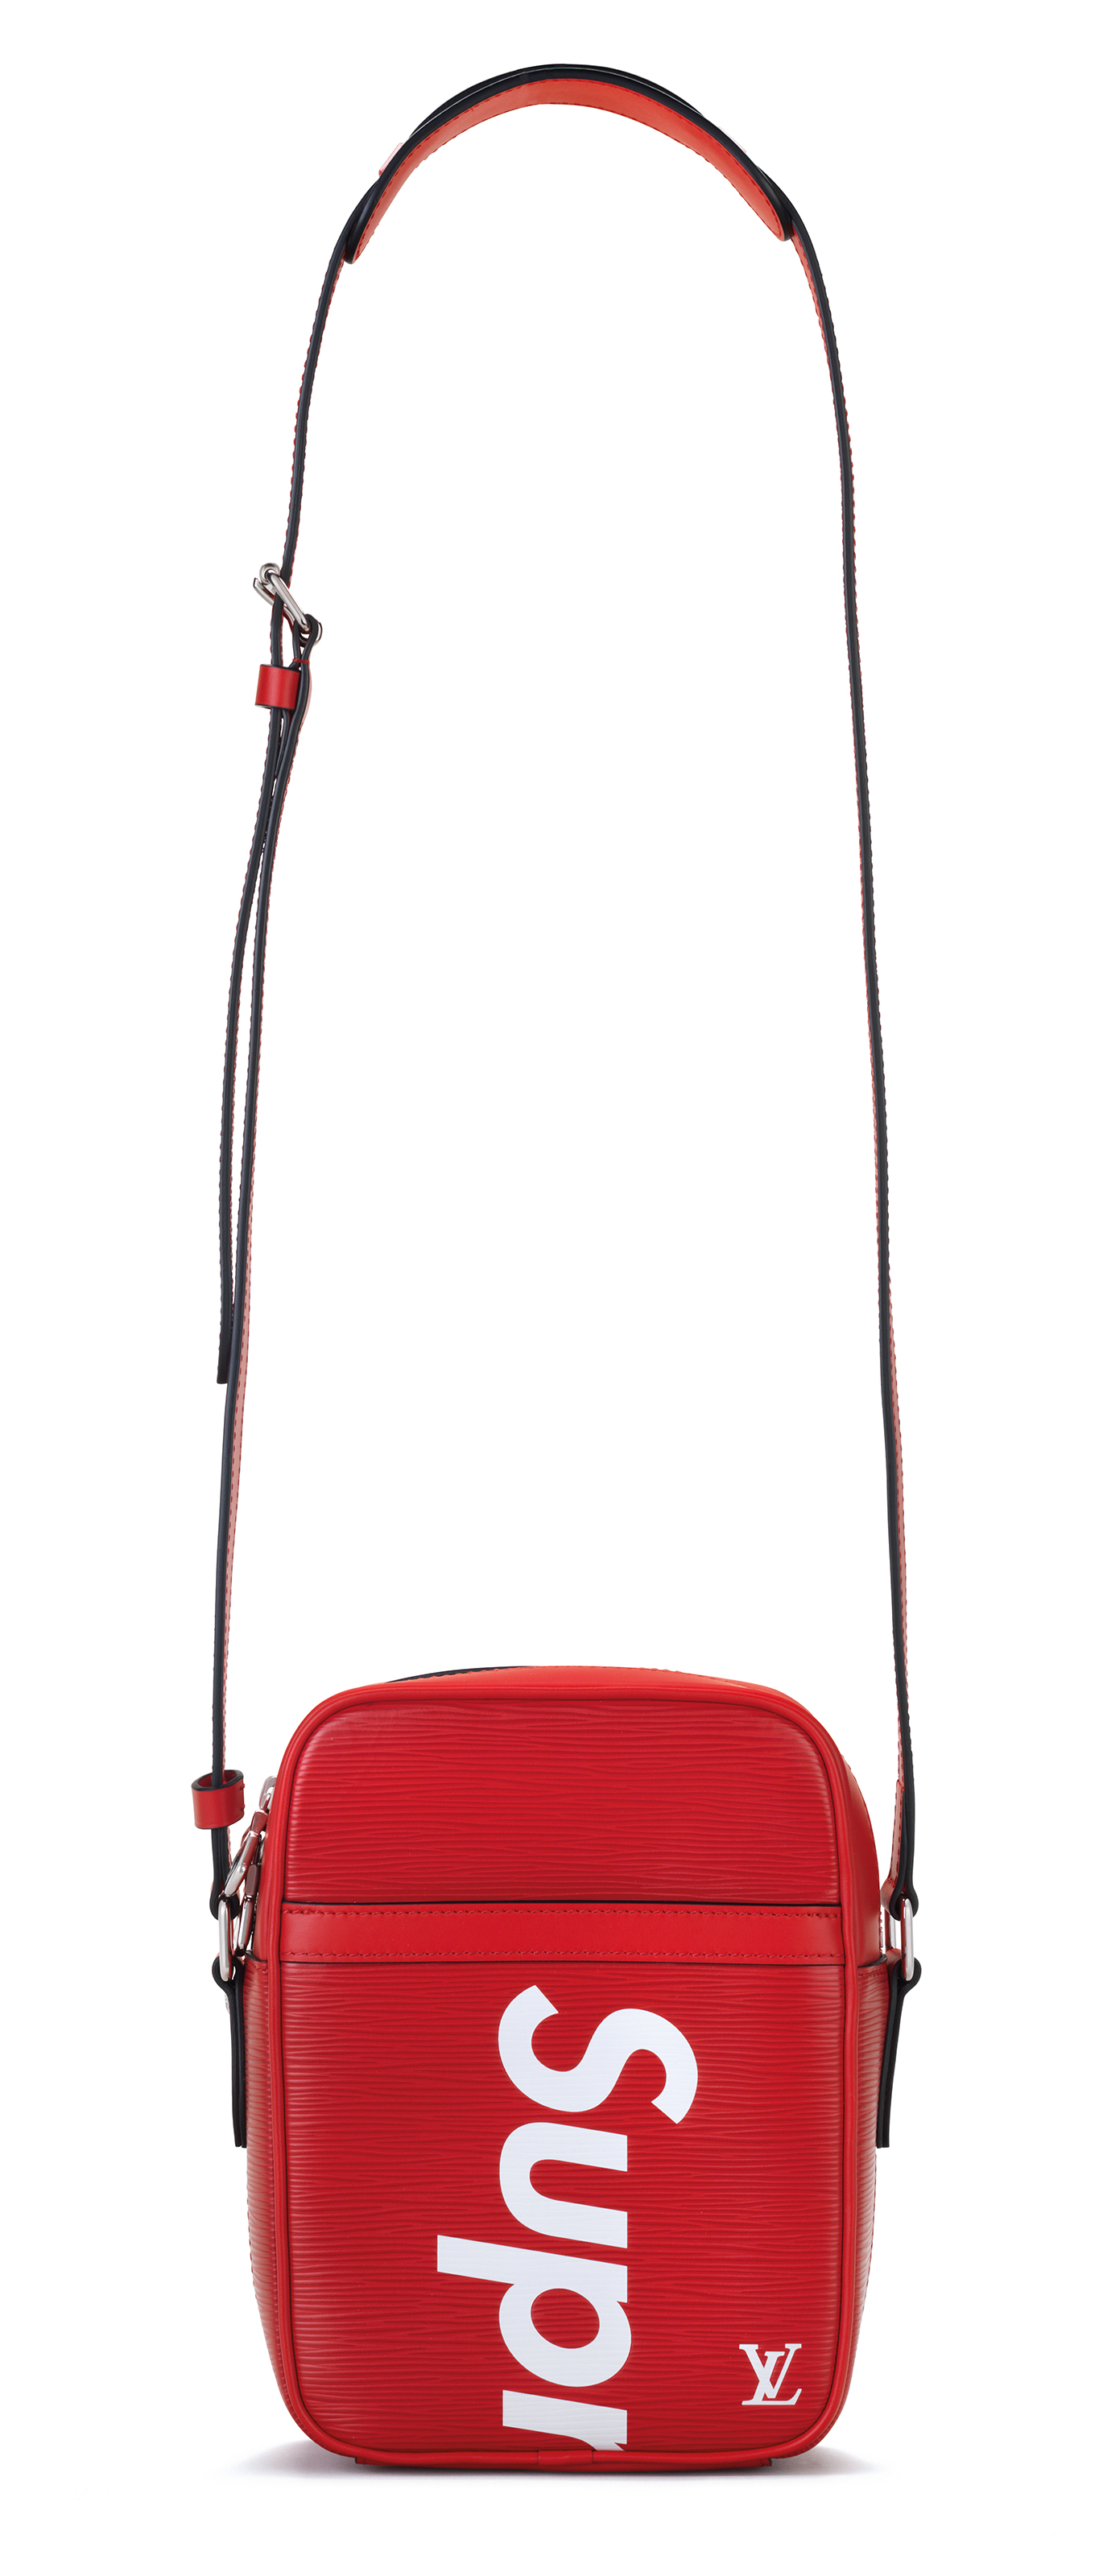 A RED & WHITE EPI LEATHER SUPREME DANUBE CROSSBODY WITH SILVER HARDWARE BY SUPREME